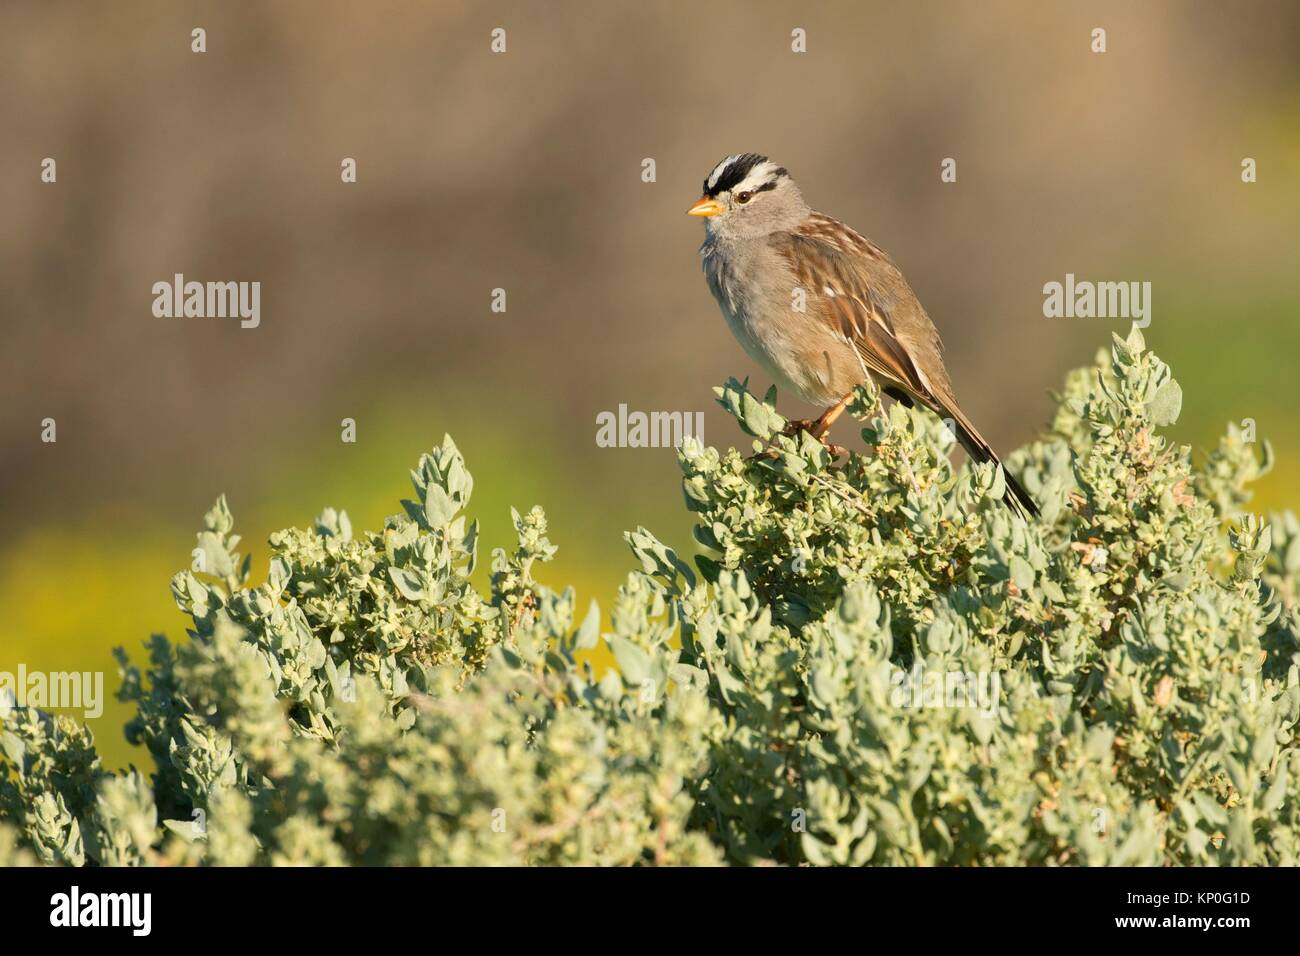 White-crowned sparrow, Carrizo Plain National Monument, California. - Stock Image